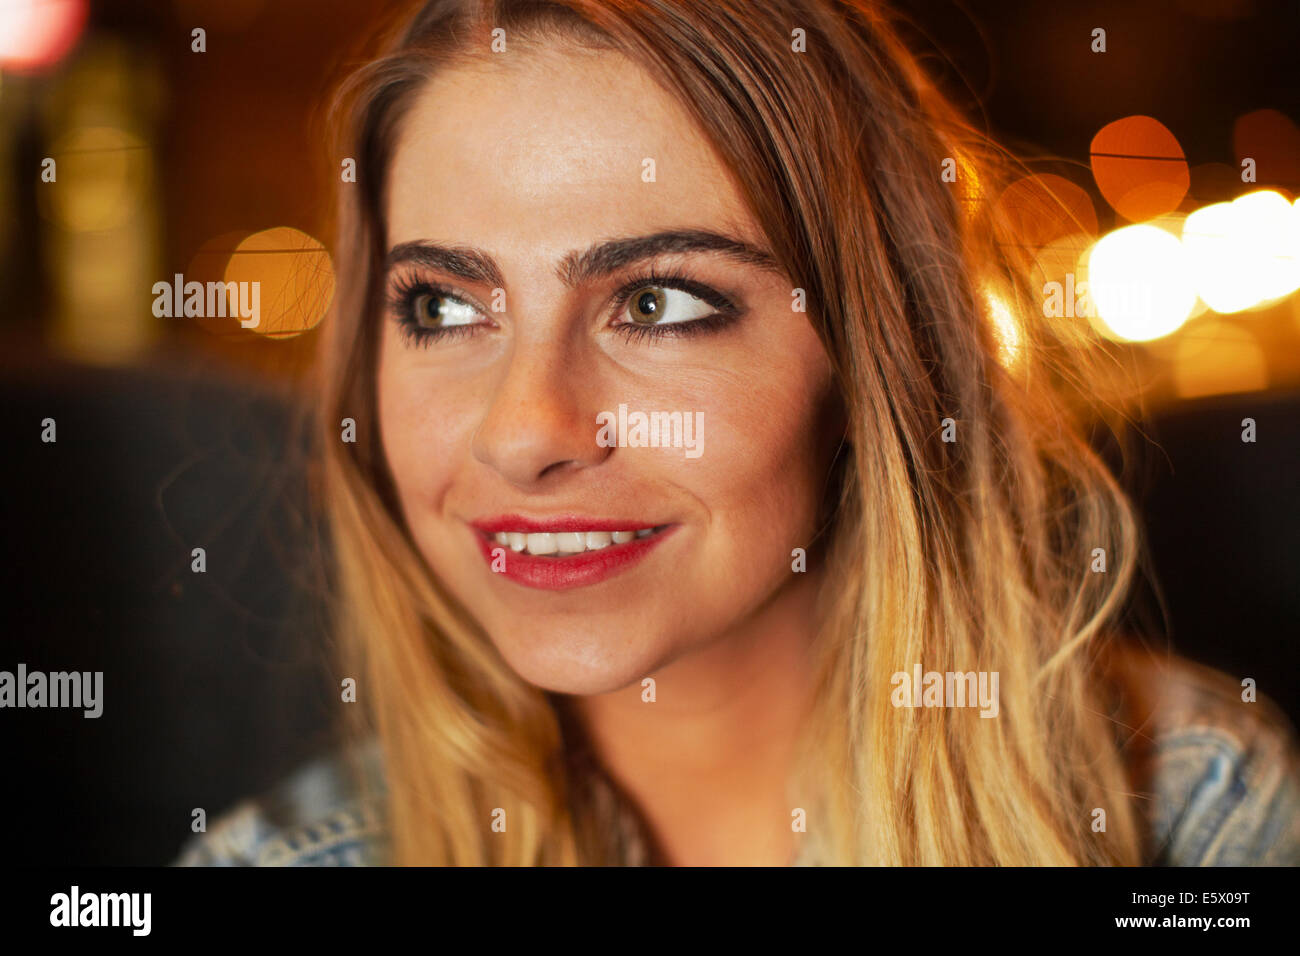 Beautiful young woman going out in city taxi at night - Stock Image